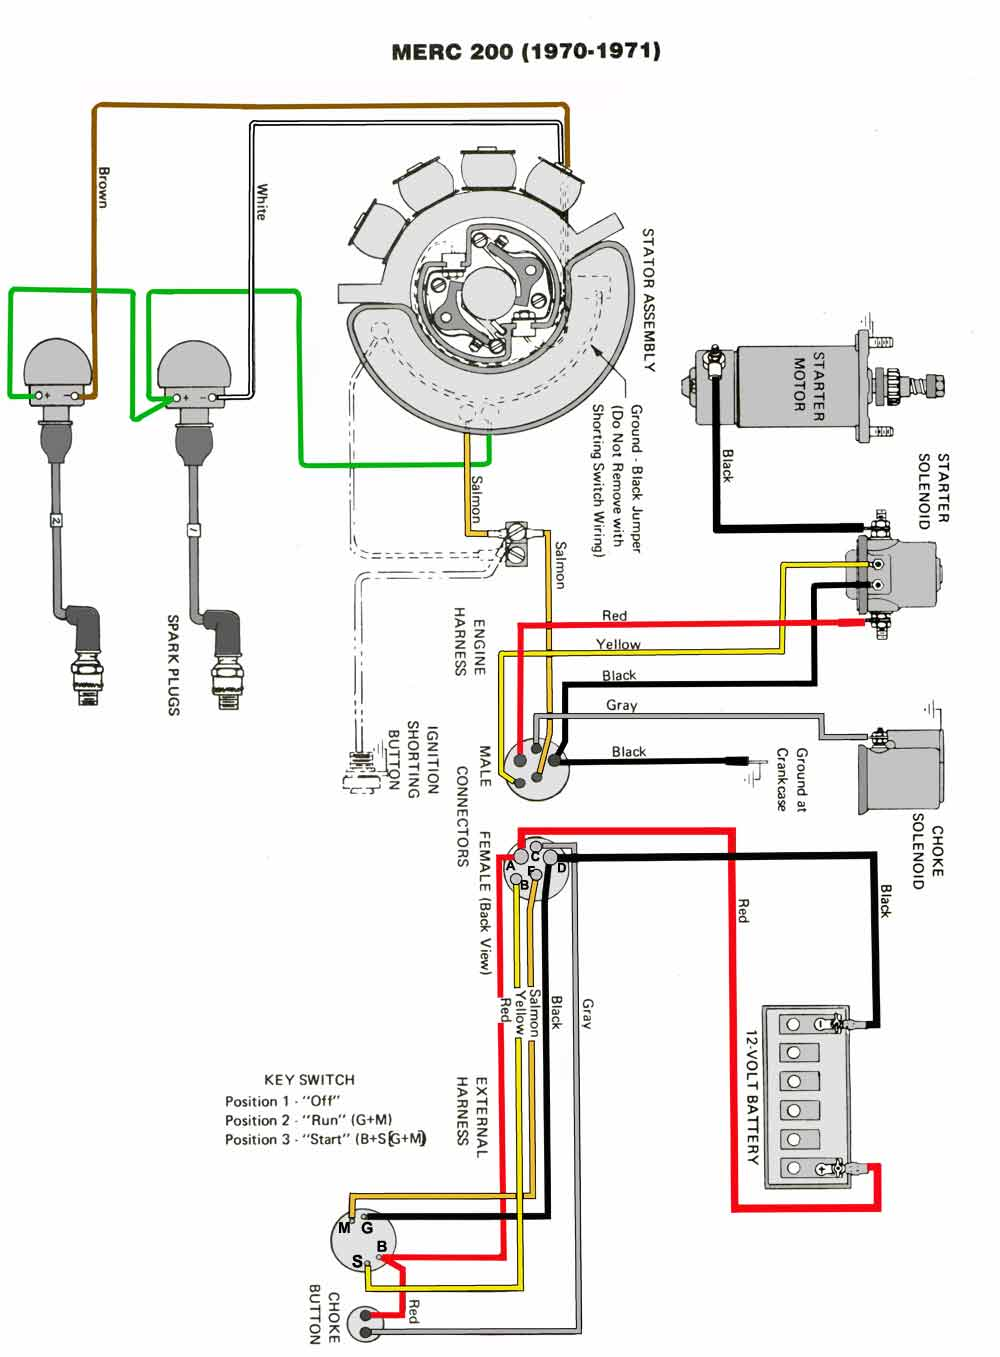 medium resolution of mercury outboard wire harness diagram wiring diagram post mercury 850 outboard wiring harness 1979 mercury outboard